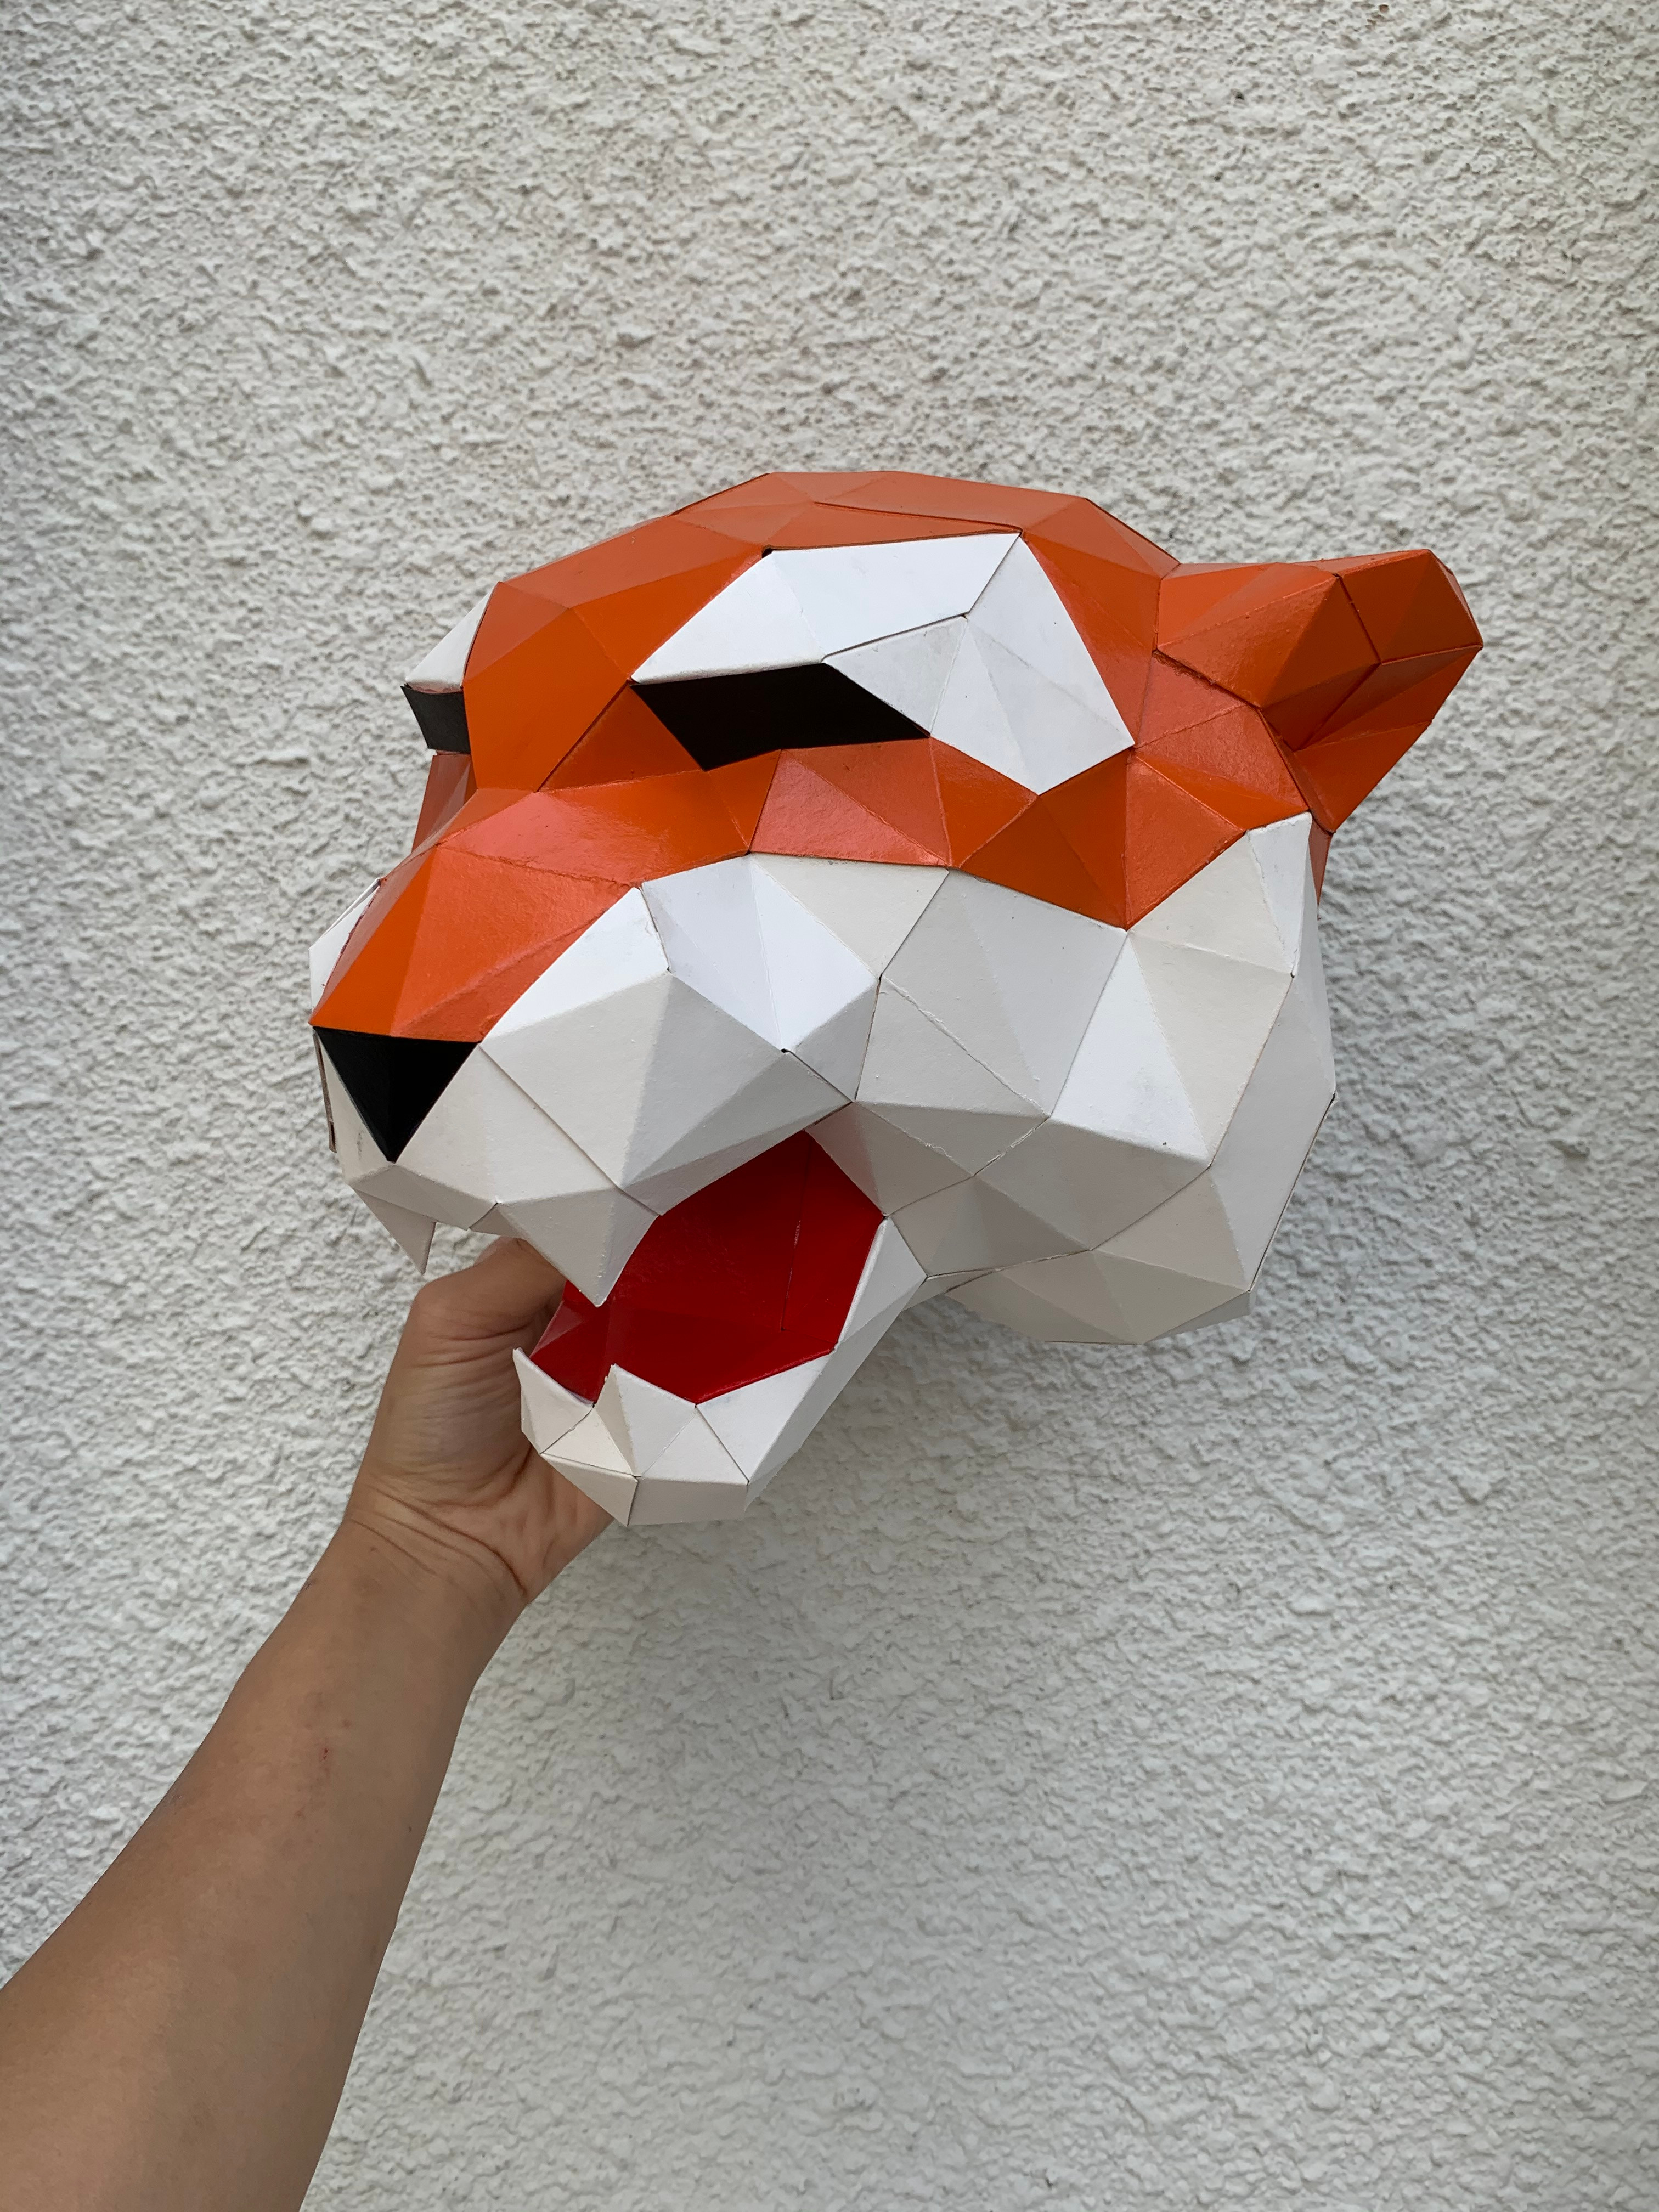 Paper Craft Advanced (Low Poly)